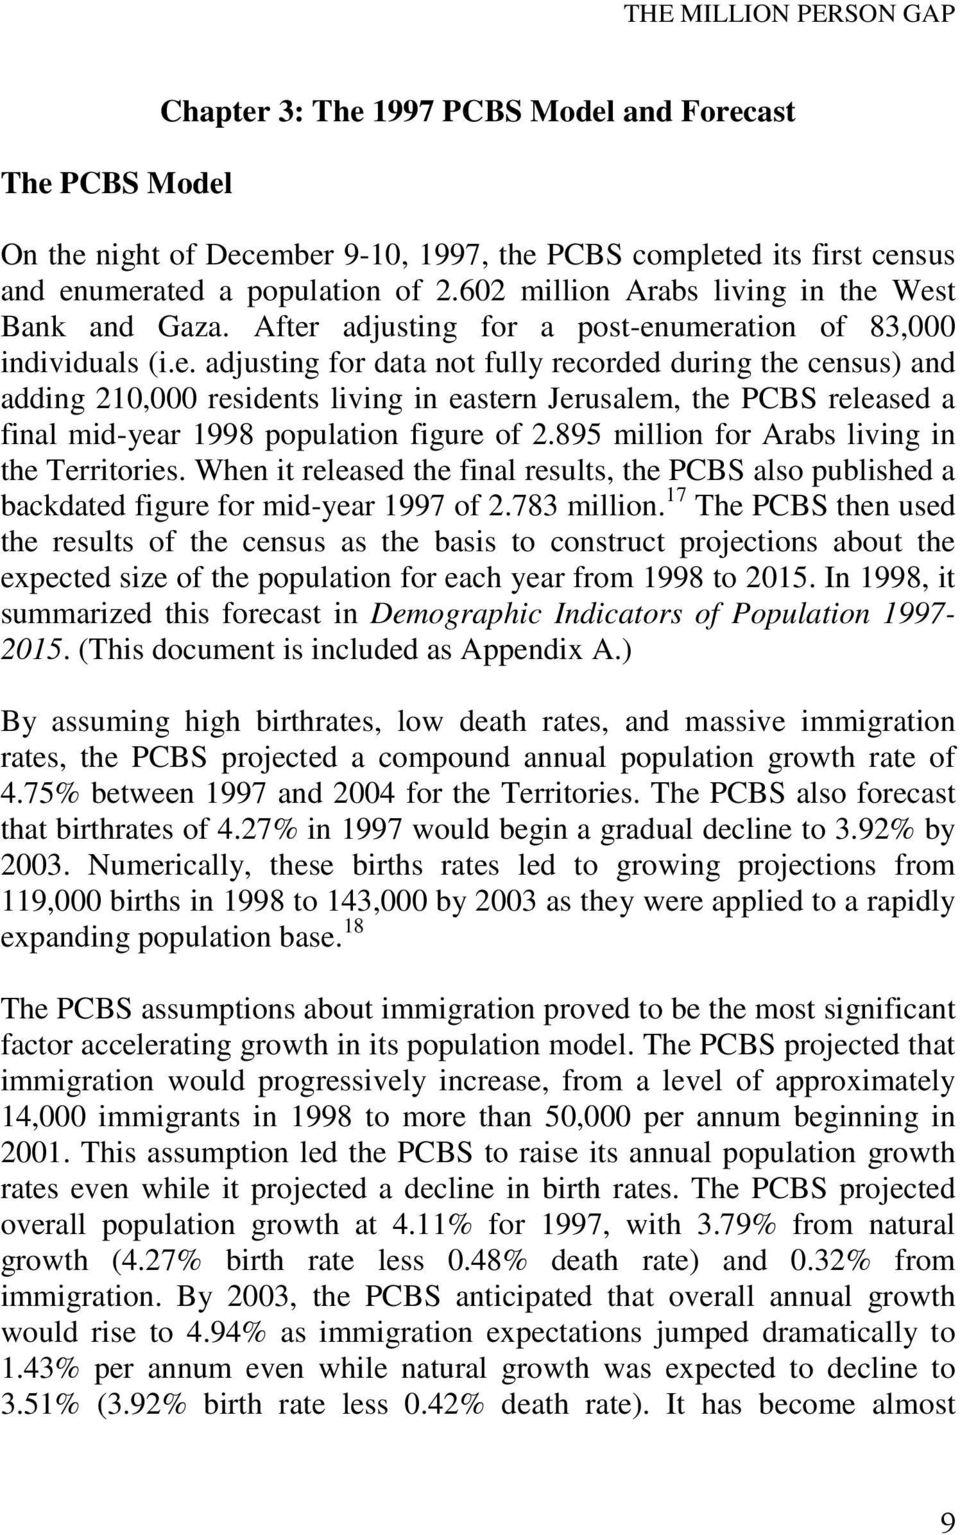 West Bank and Gaza. After adjusting for a post-enumeration of 83,000 individuals (i.e. adjusting for data not fully recorded during the census) and adding 210,000 residents living in eastern Jerusalem, the PCBS released a final mid-year 1998 population figure of 2.